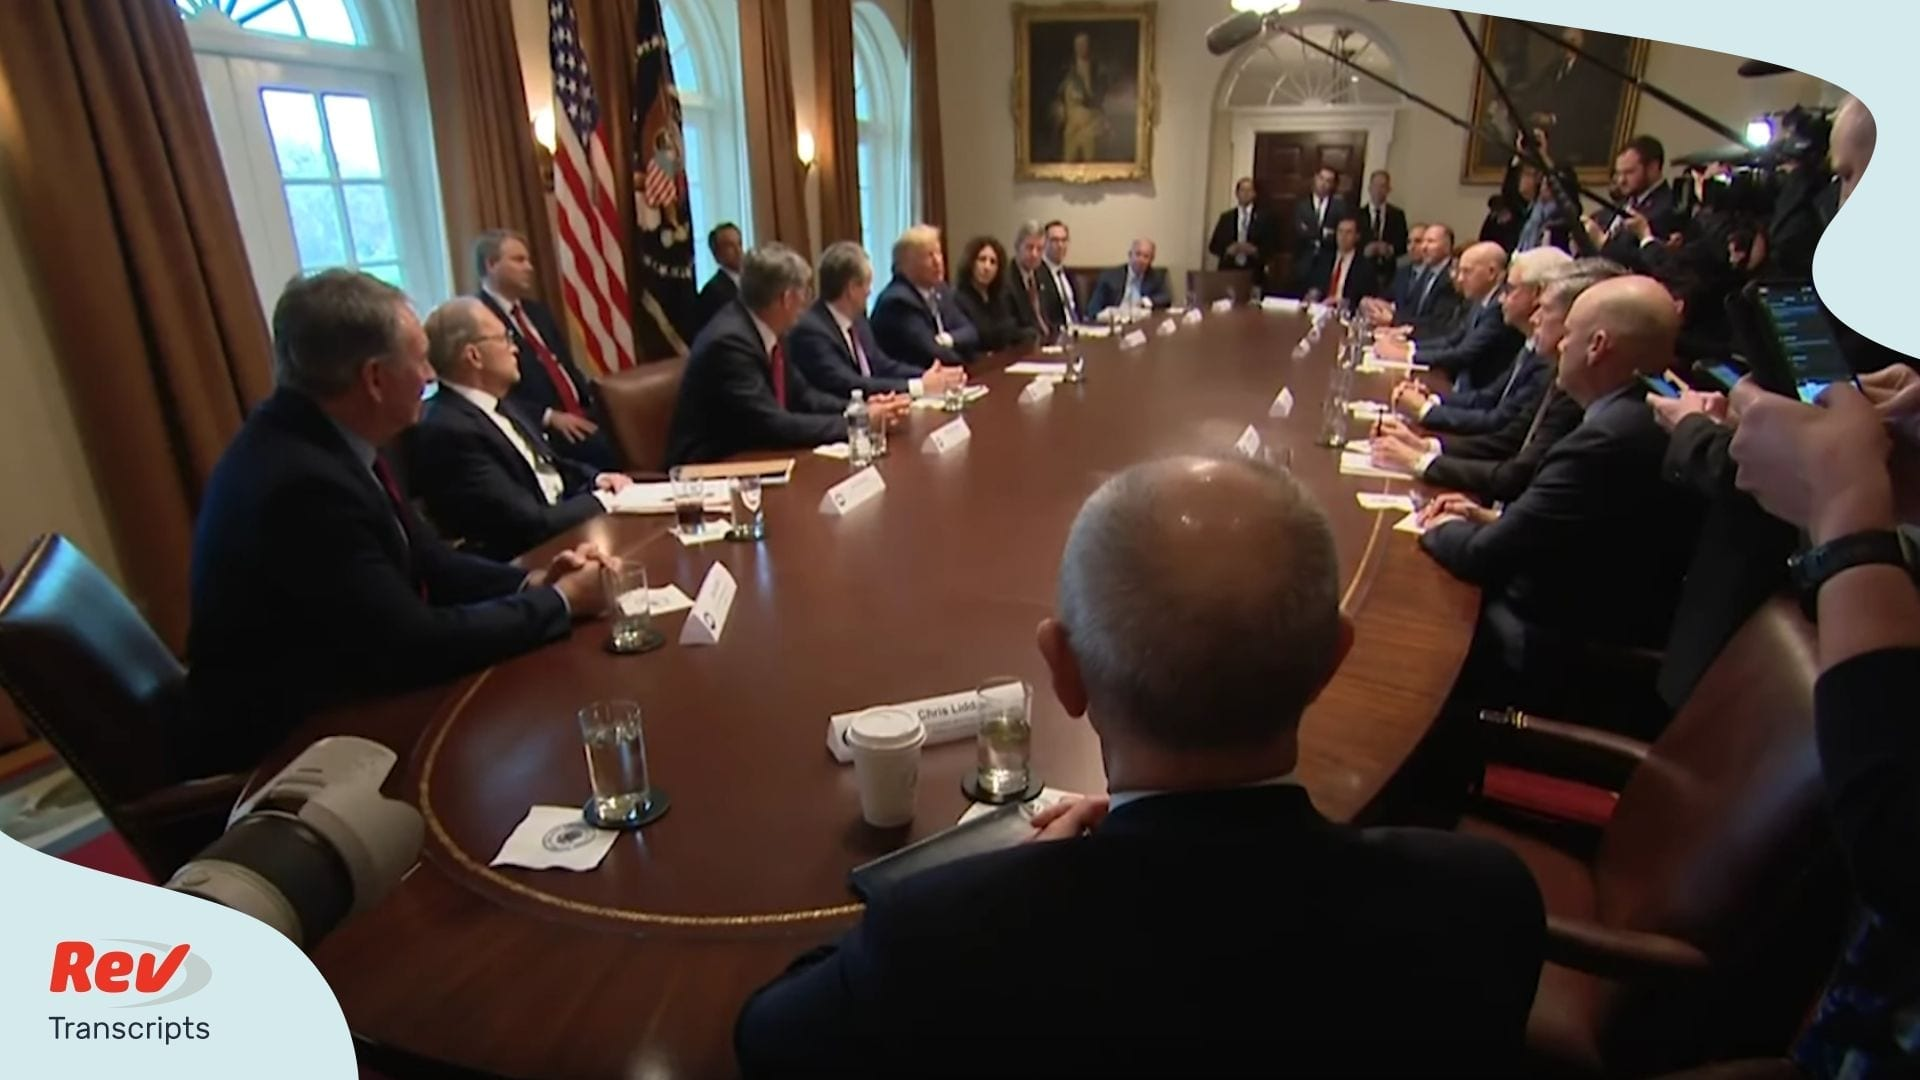 Donald Trump Meets with Bank CEOs Transcript